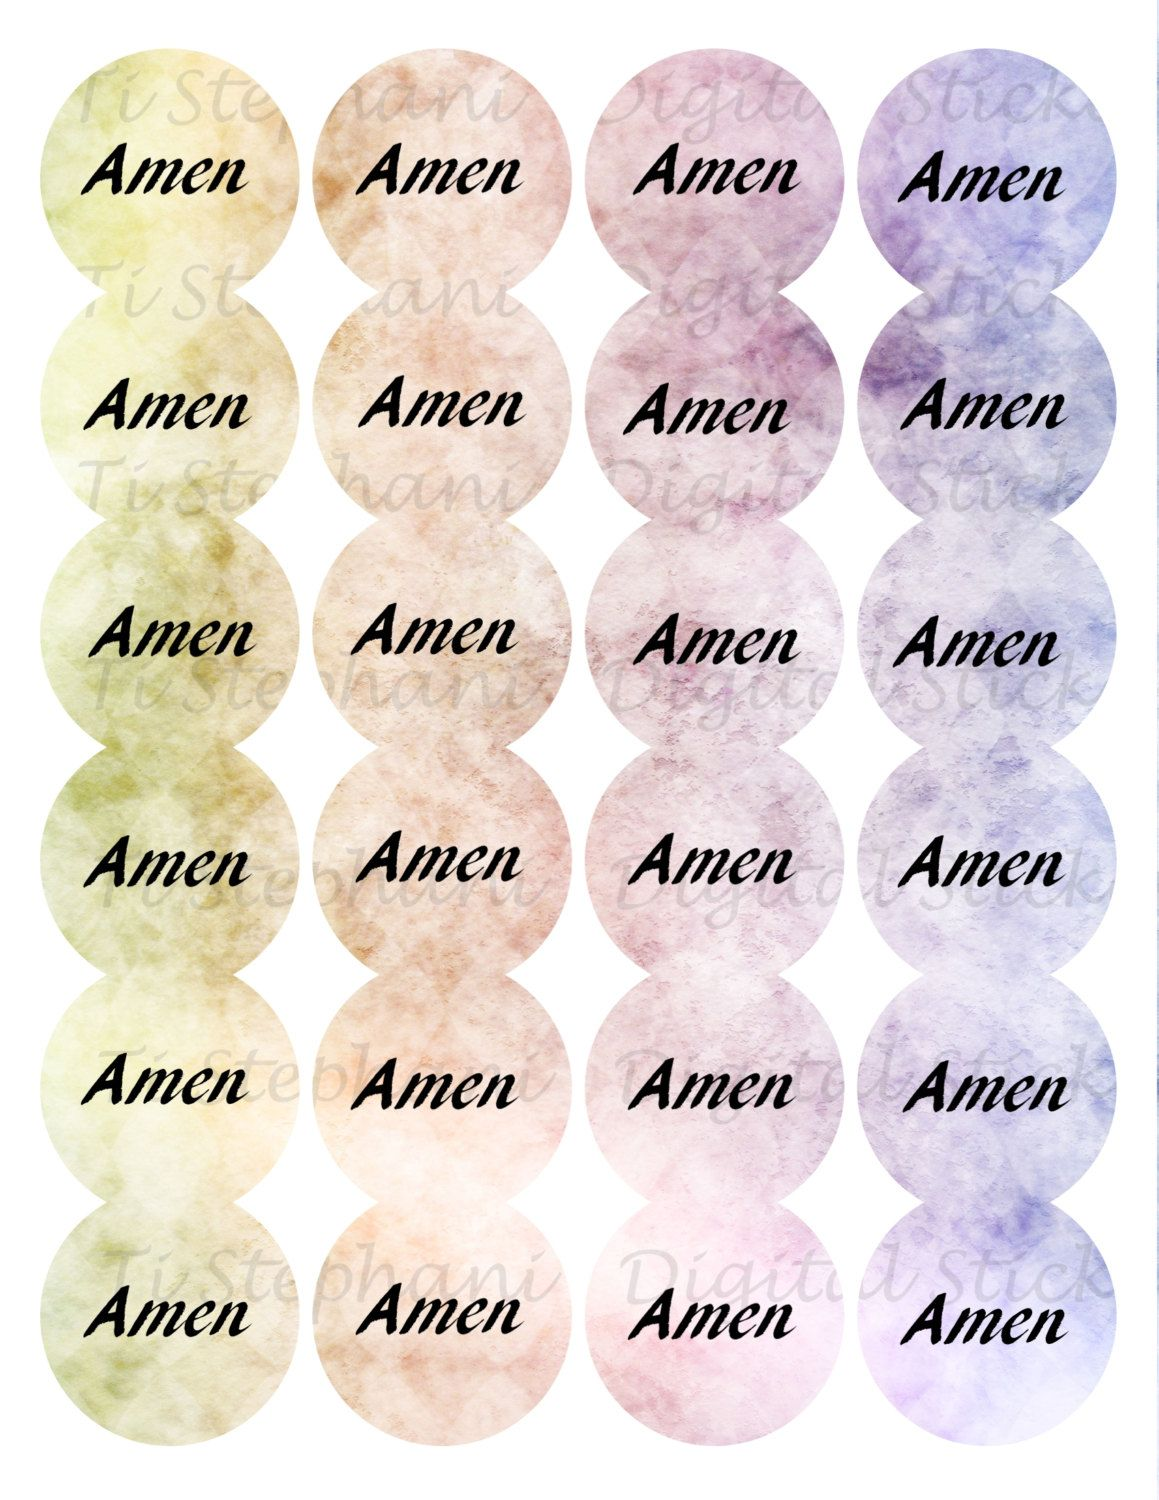 Amen Hazy Rainbow 2 Stickers, 24 Stickers, Digital Round Images 1 2/3 inch circle, Amen Series for Planner, Jewelry, Scrapbooking and Crafts by TiStephani on Etsy